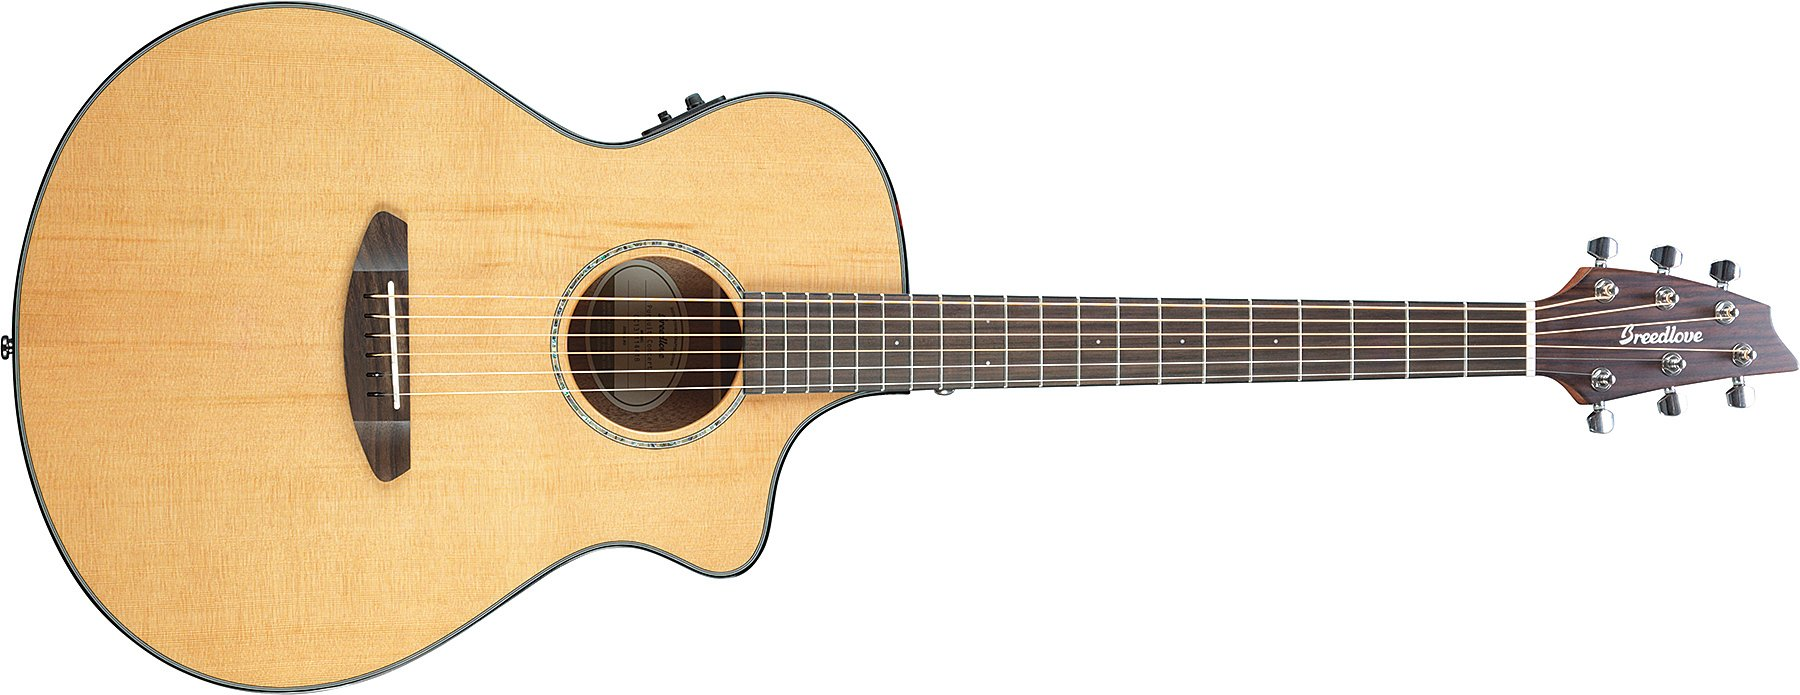 Acoustic-Electric Guitar